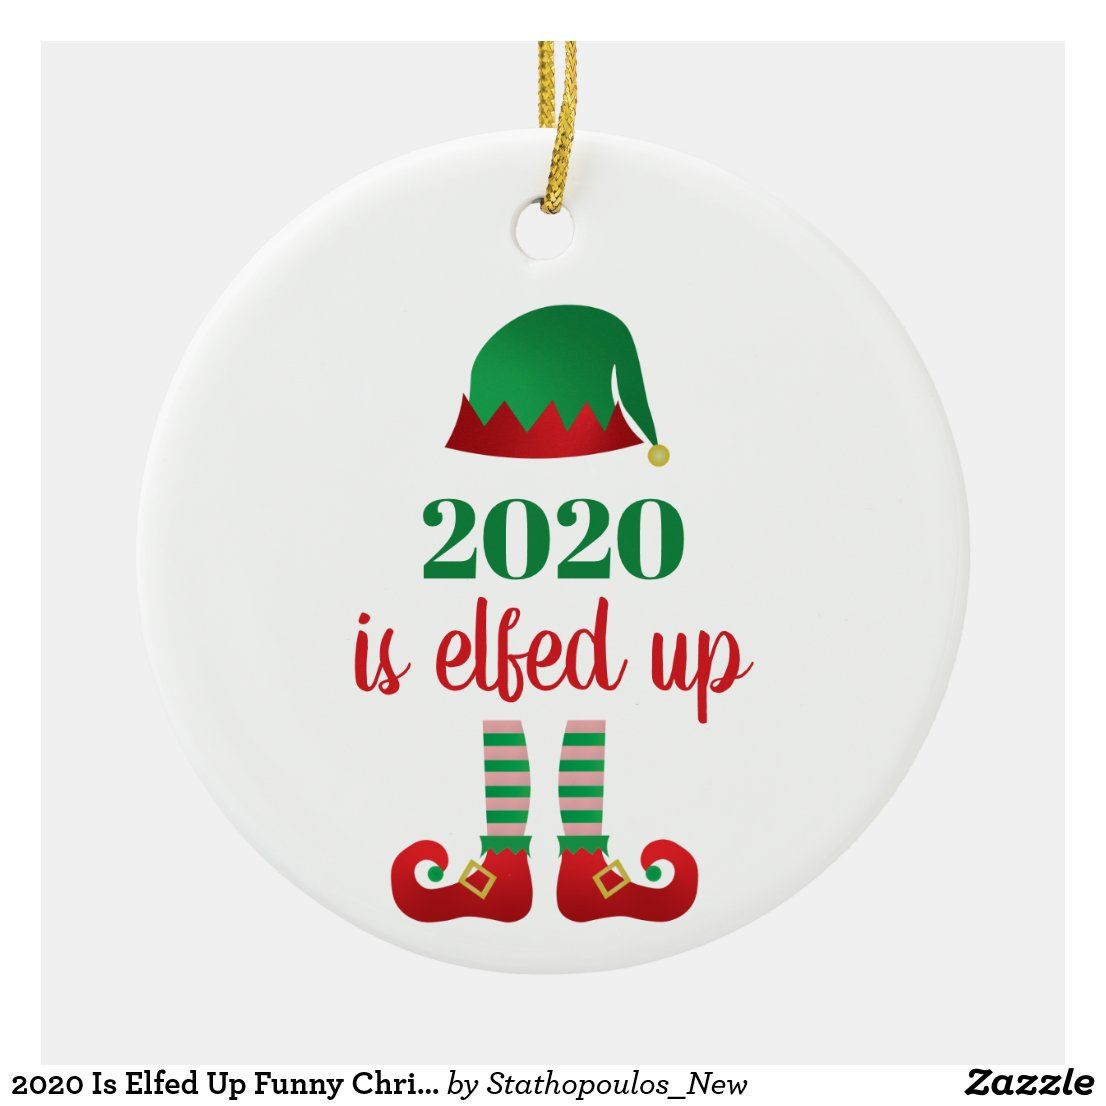 Simple Funny Christmas Decorations For 2021 2020 Is Elfed Up Funny Christmas Saying Green Ceramic Ornament Zazzle Com In 2021 Funny Christmas Ornaments Cricut Christmas Ideas Diy Christmas Ornaments